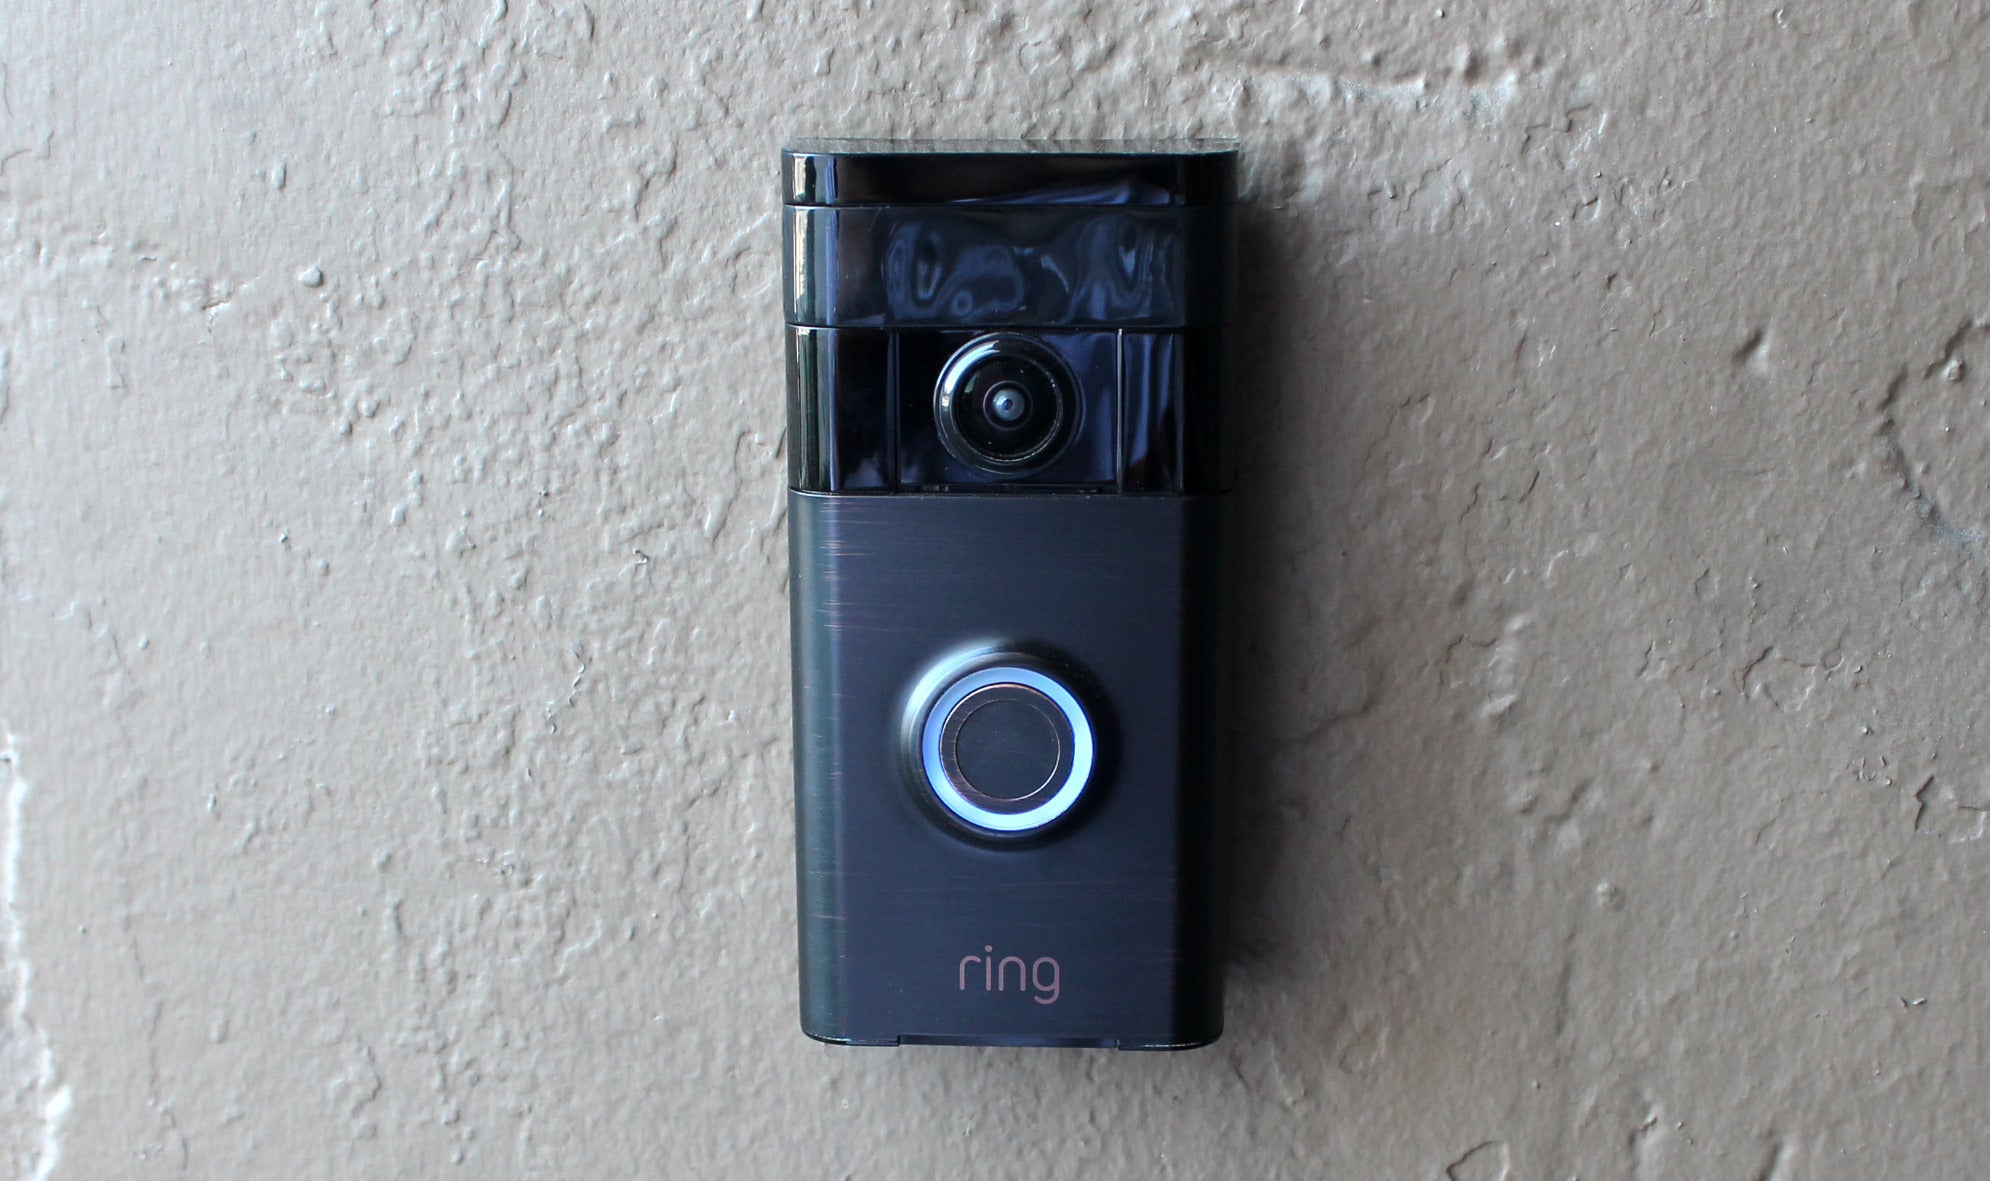 Ring Pro Doorbell Remove Front Cover